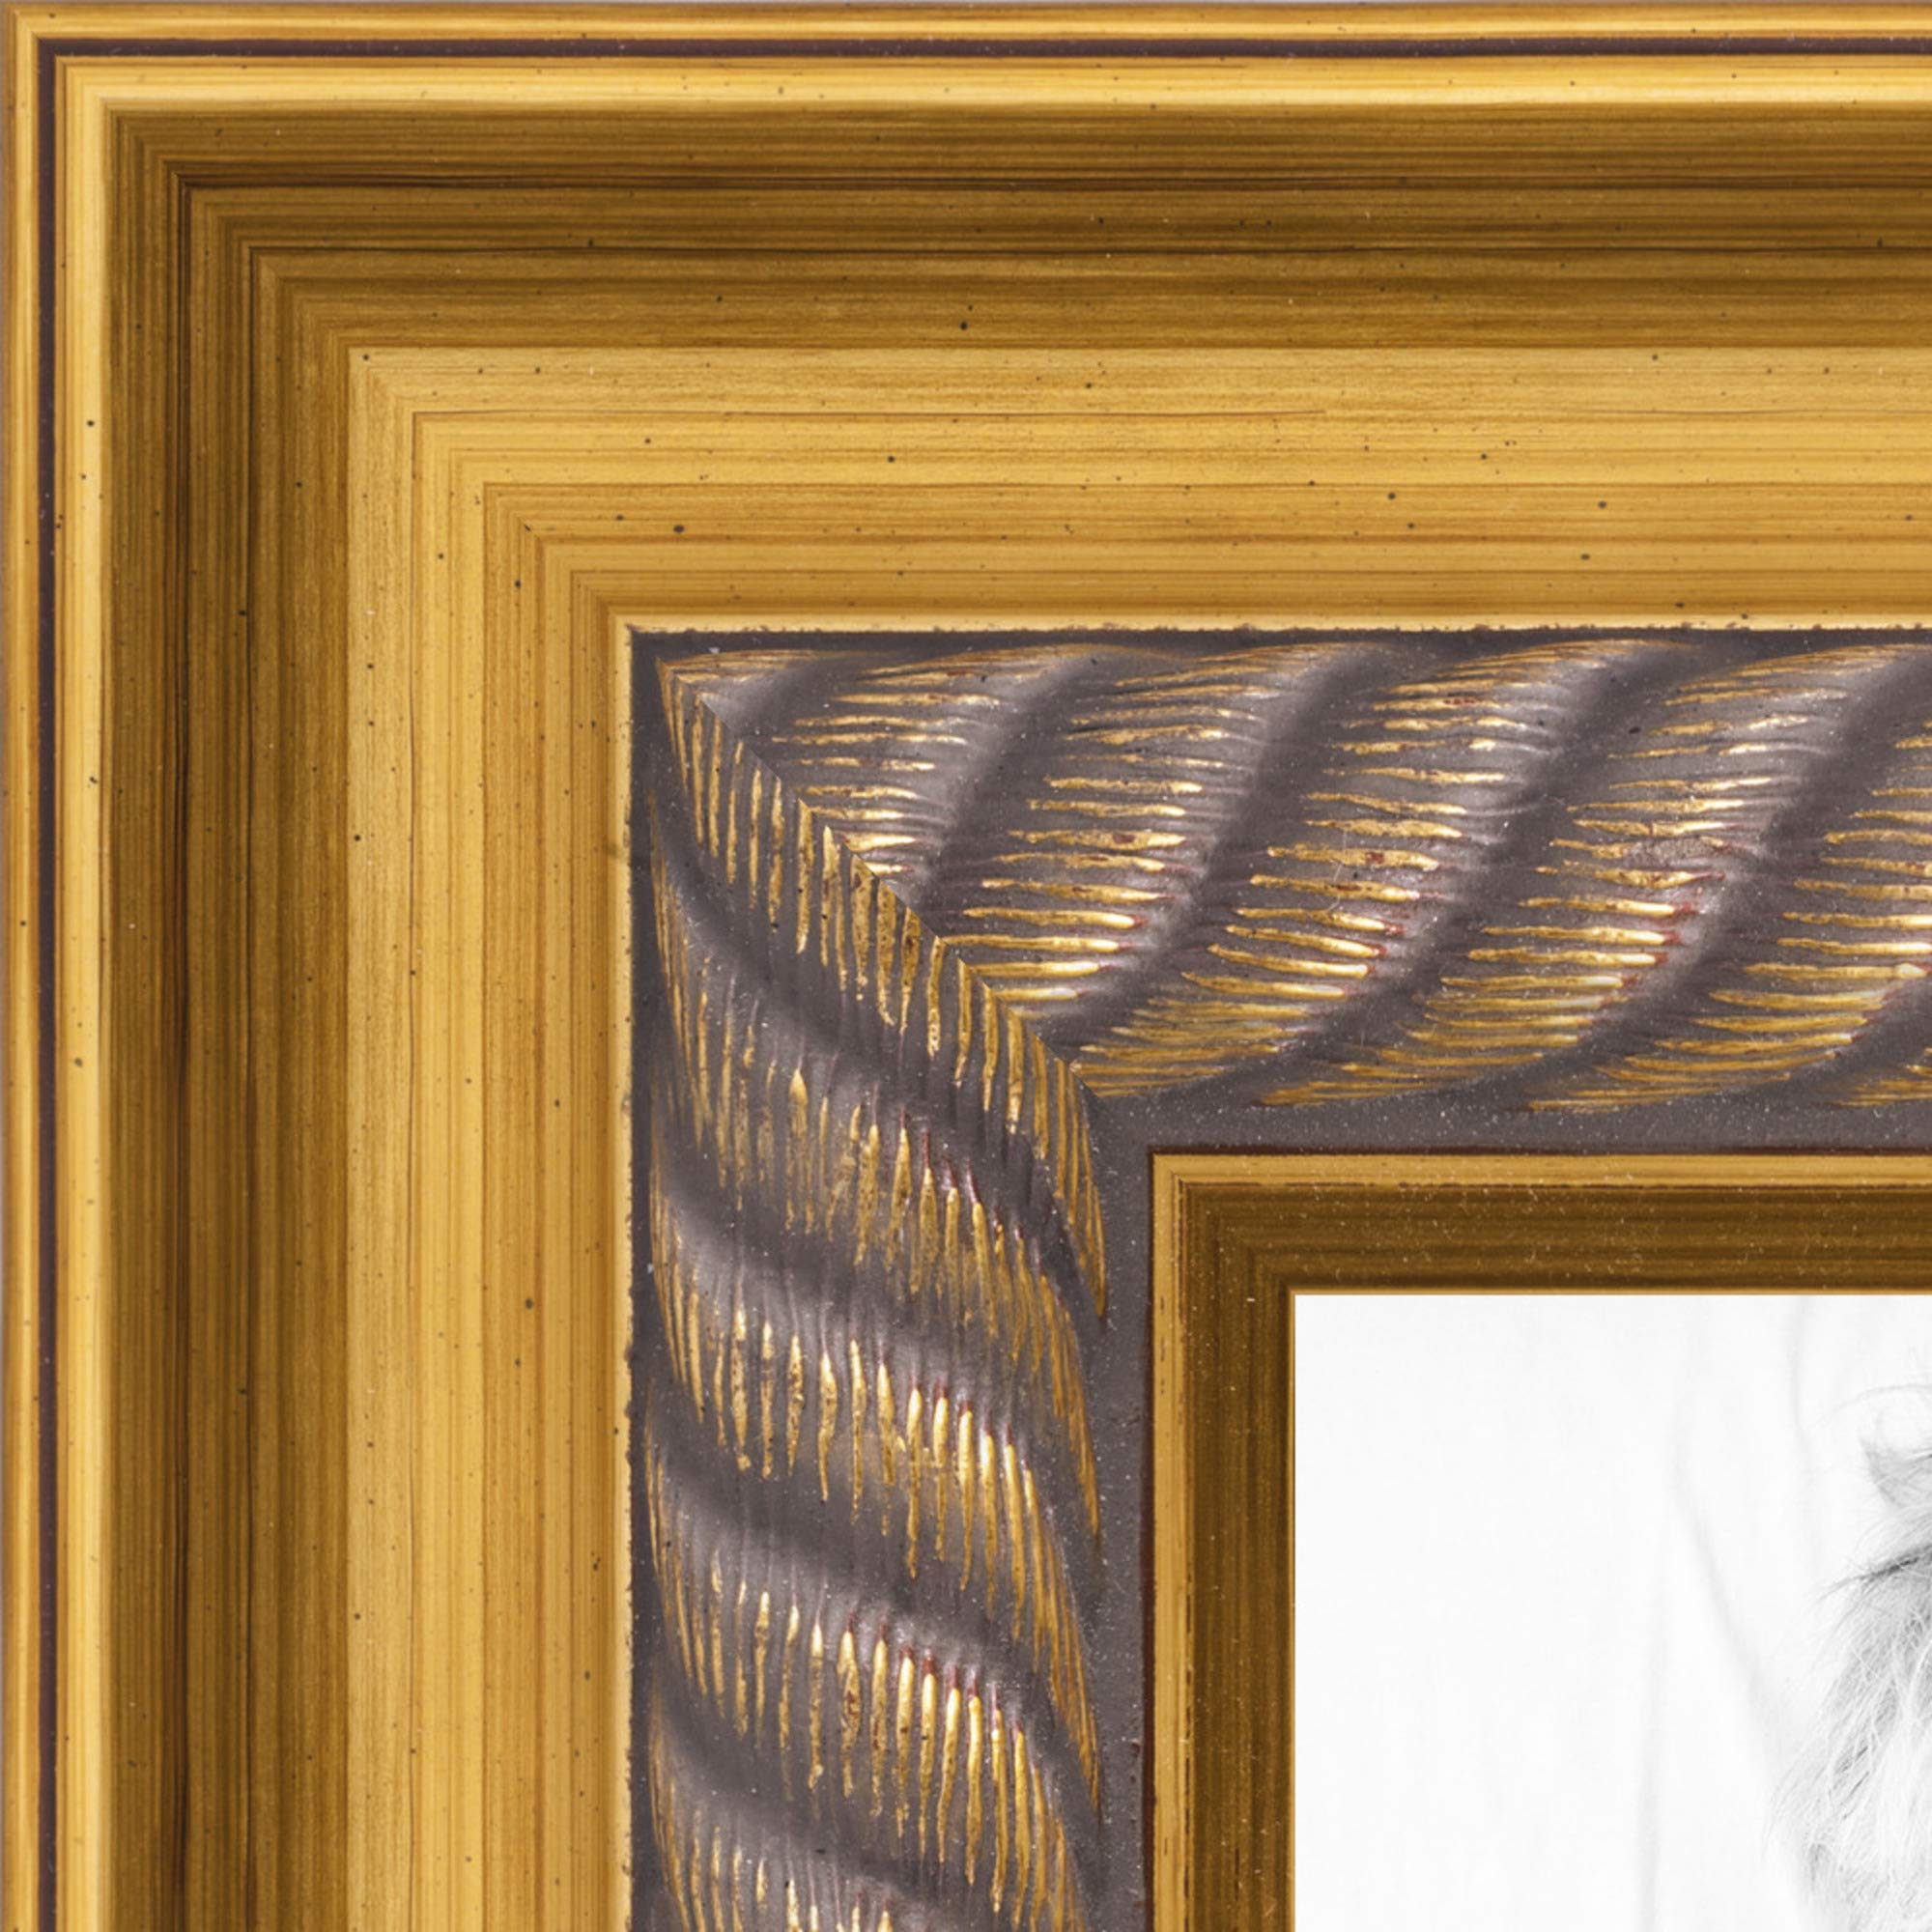 ArtToFrames 12x15 inch Gold Slope with Rope Wood Picture Frame, 2WOMCPB-01105-12x15